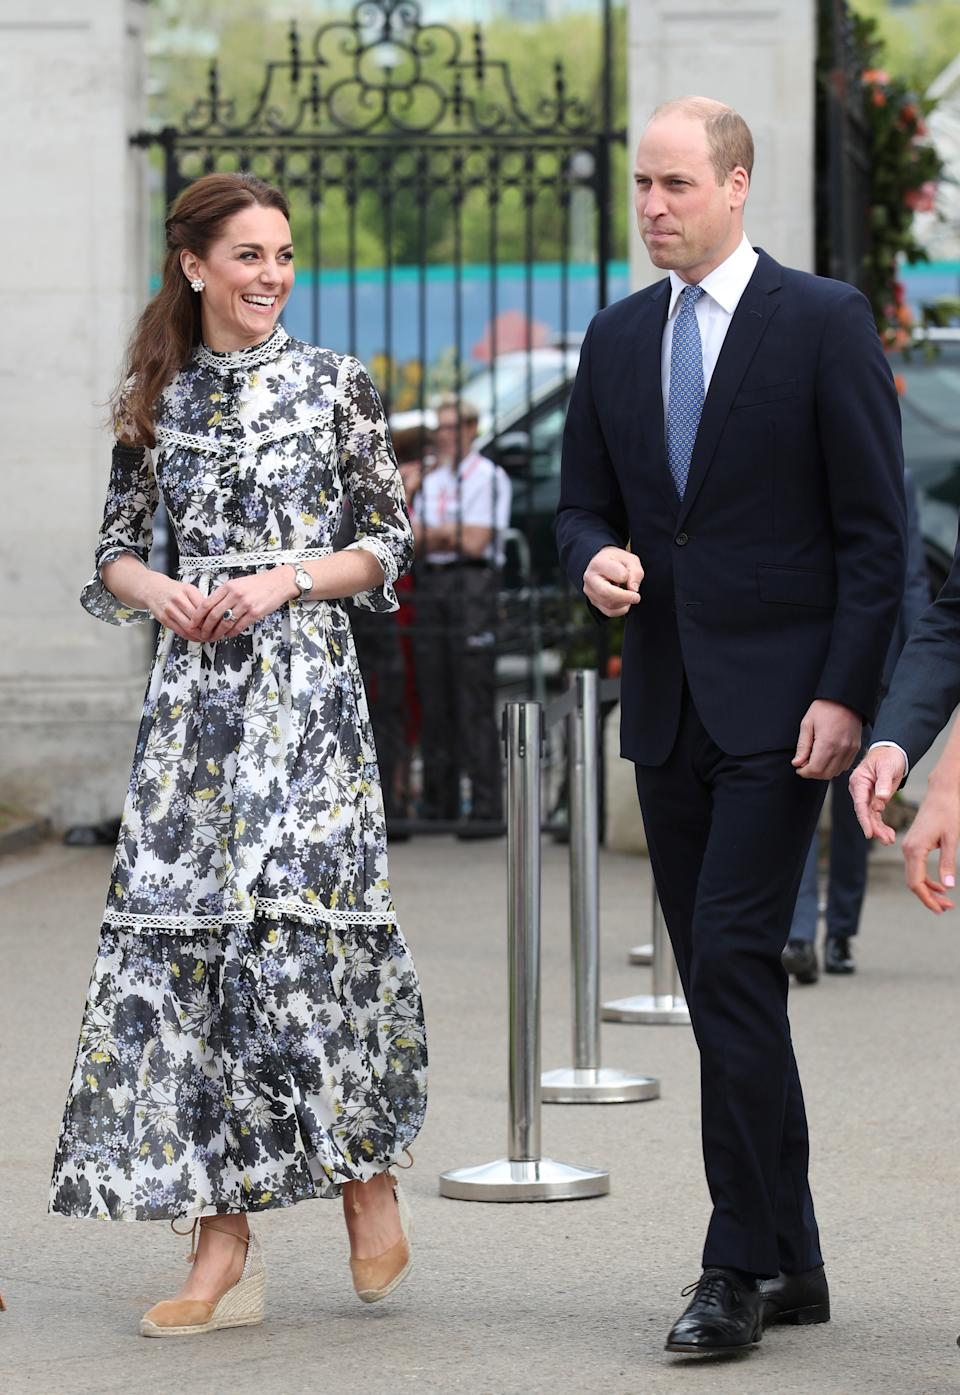 The Duke and Duchess of Cambridge wore the Castañer wedges as she visited the 2019 RHS Chelsea Flower Show in London on May 20, 2019. (Getty Images)